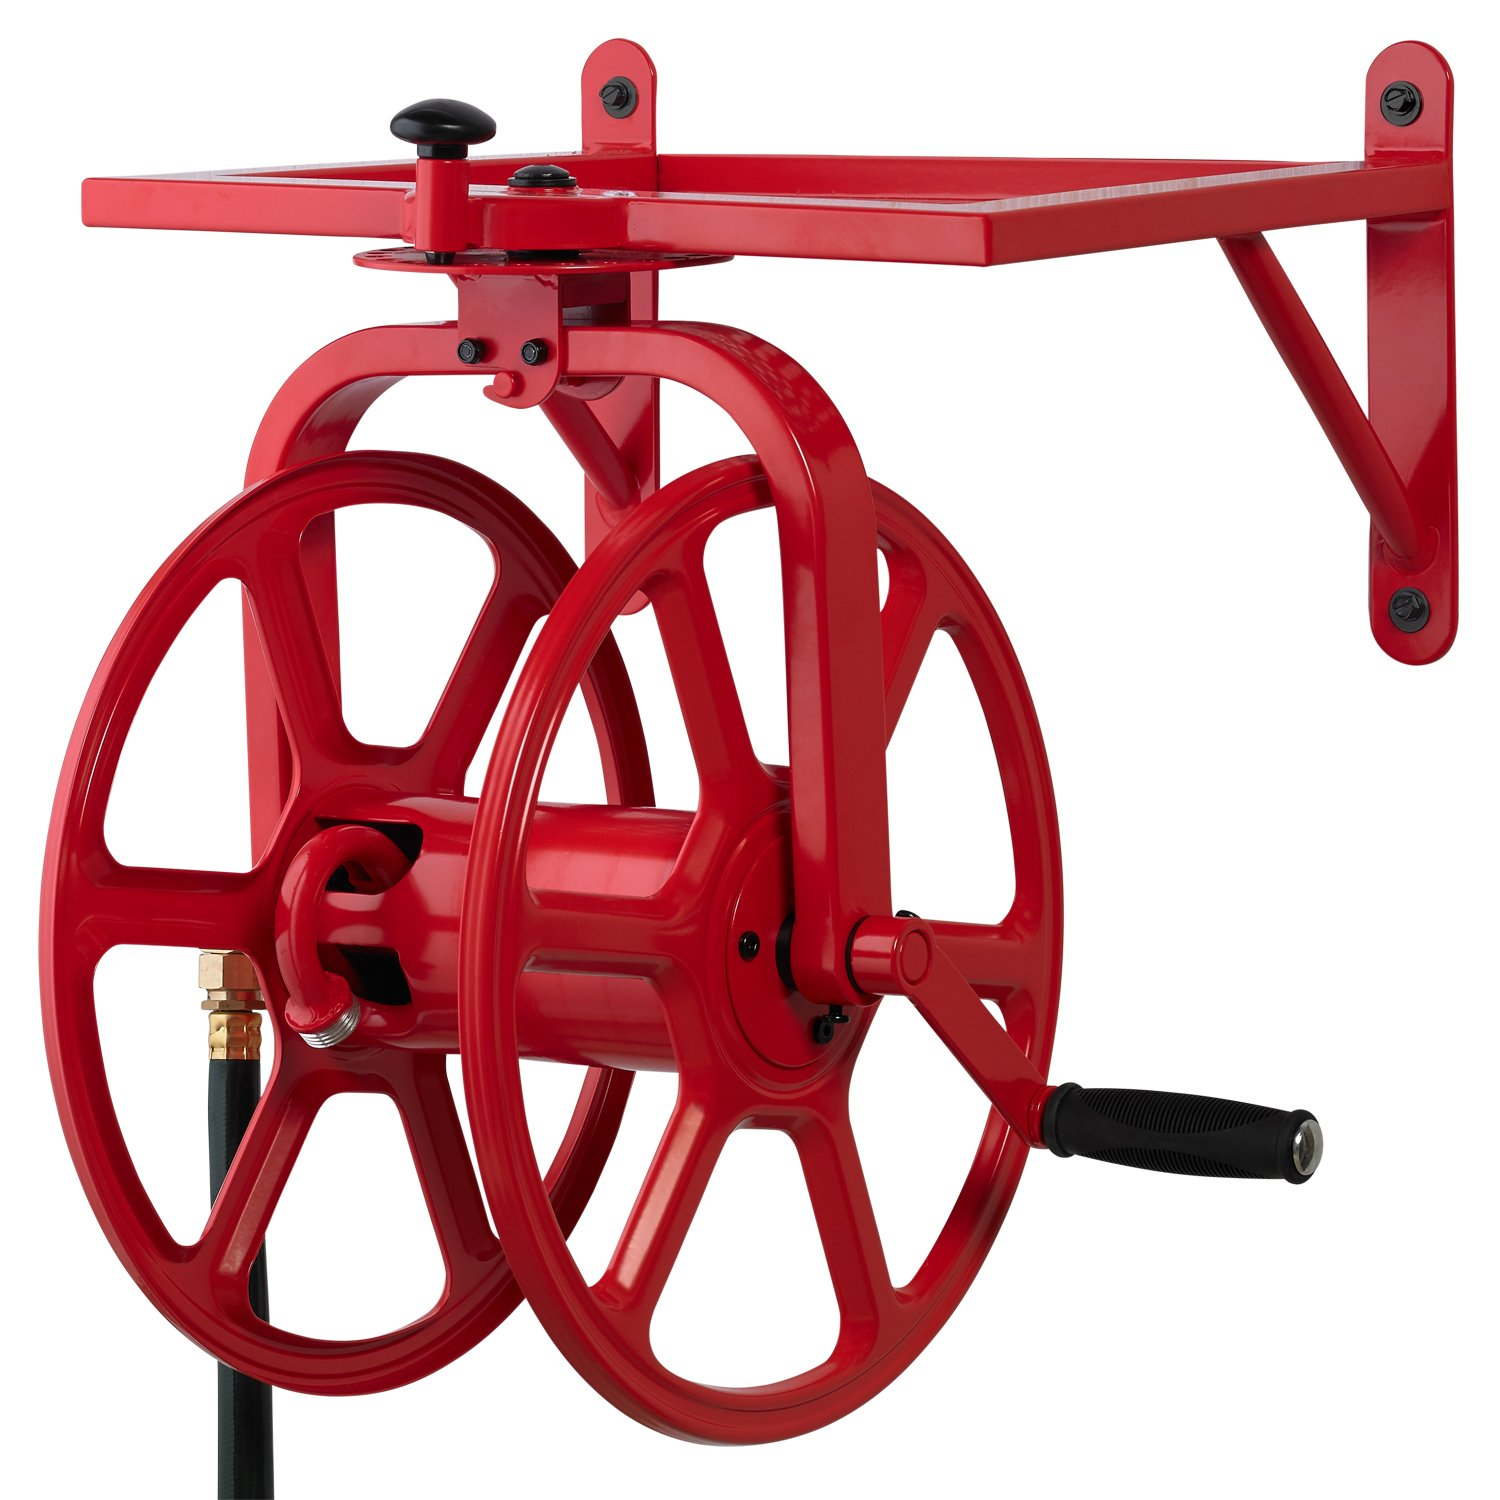 Liberty Garden 713 Revolution Multi-Directional Garden Hose Reel, Red by Liberty Garden Products